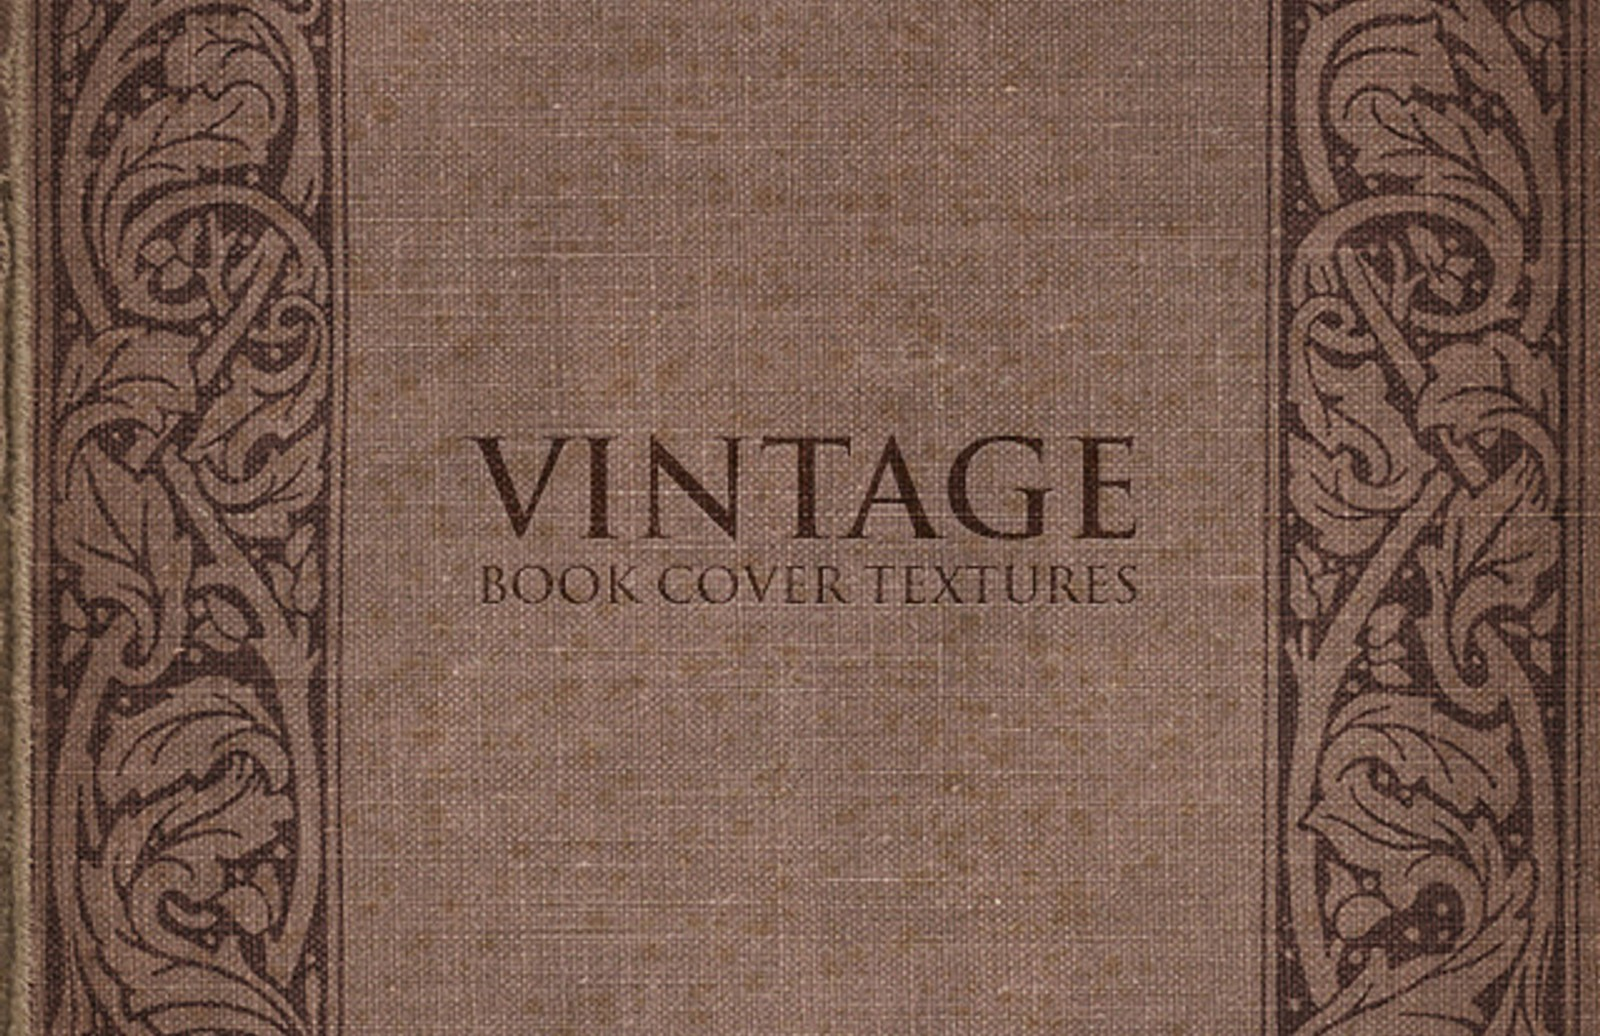 Book Cover Vintage Yoga : Vintage book cover textures — medialoot